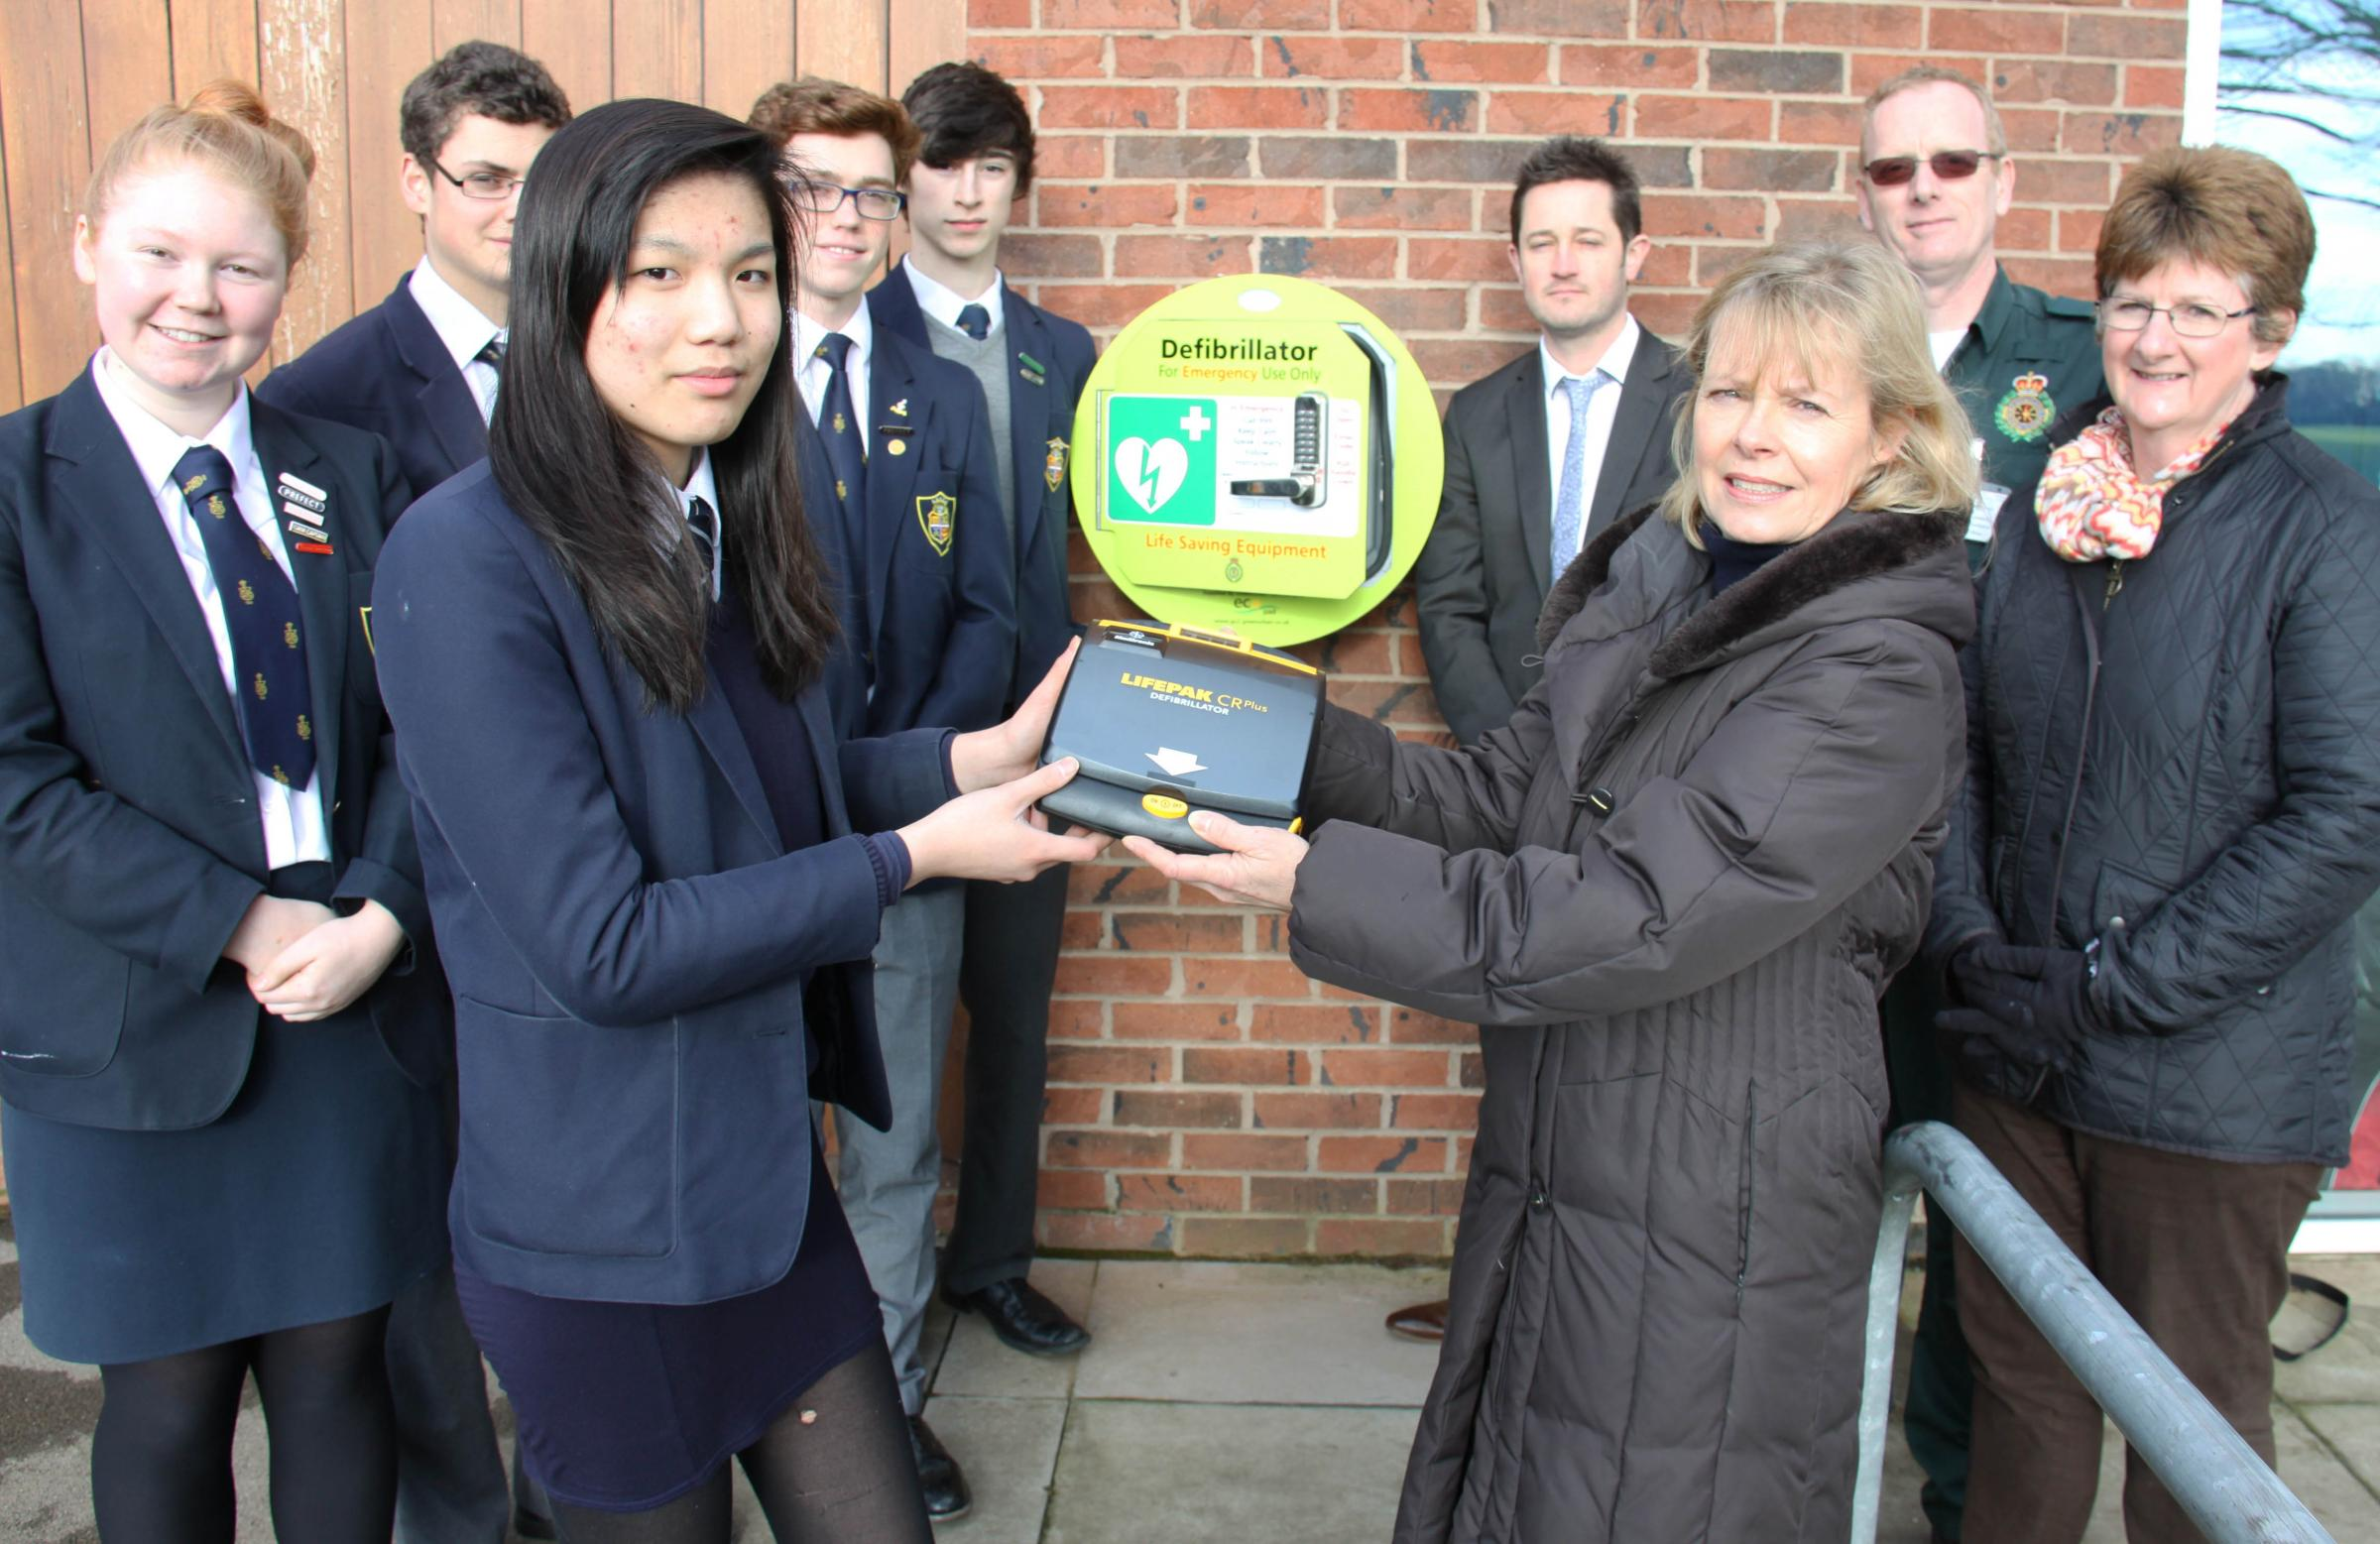 Alison Reed, of the parents' association, passes the defibrillator to student Lory Wong as sixth formers look on together with  Chris Sharp and Neil Marsey, of the ambulance Service, and Fiona Pearman, of the association